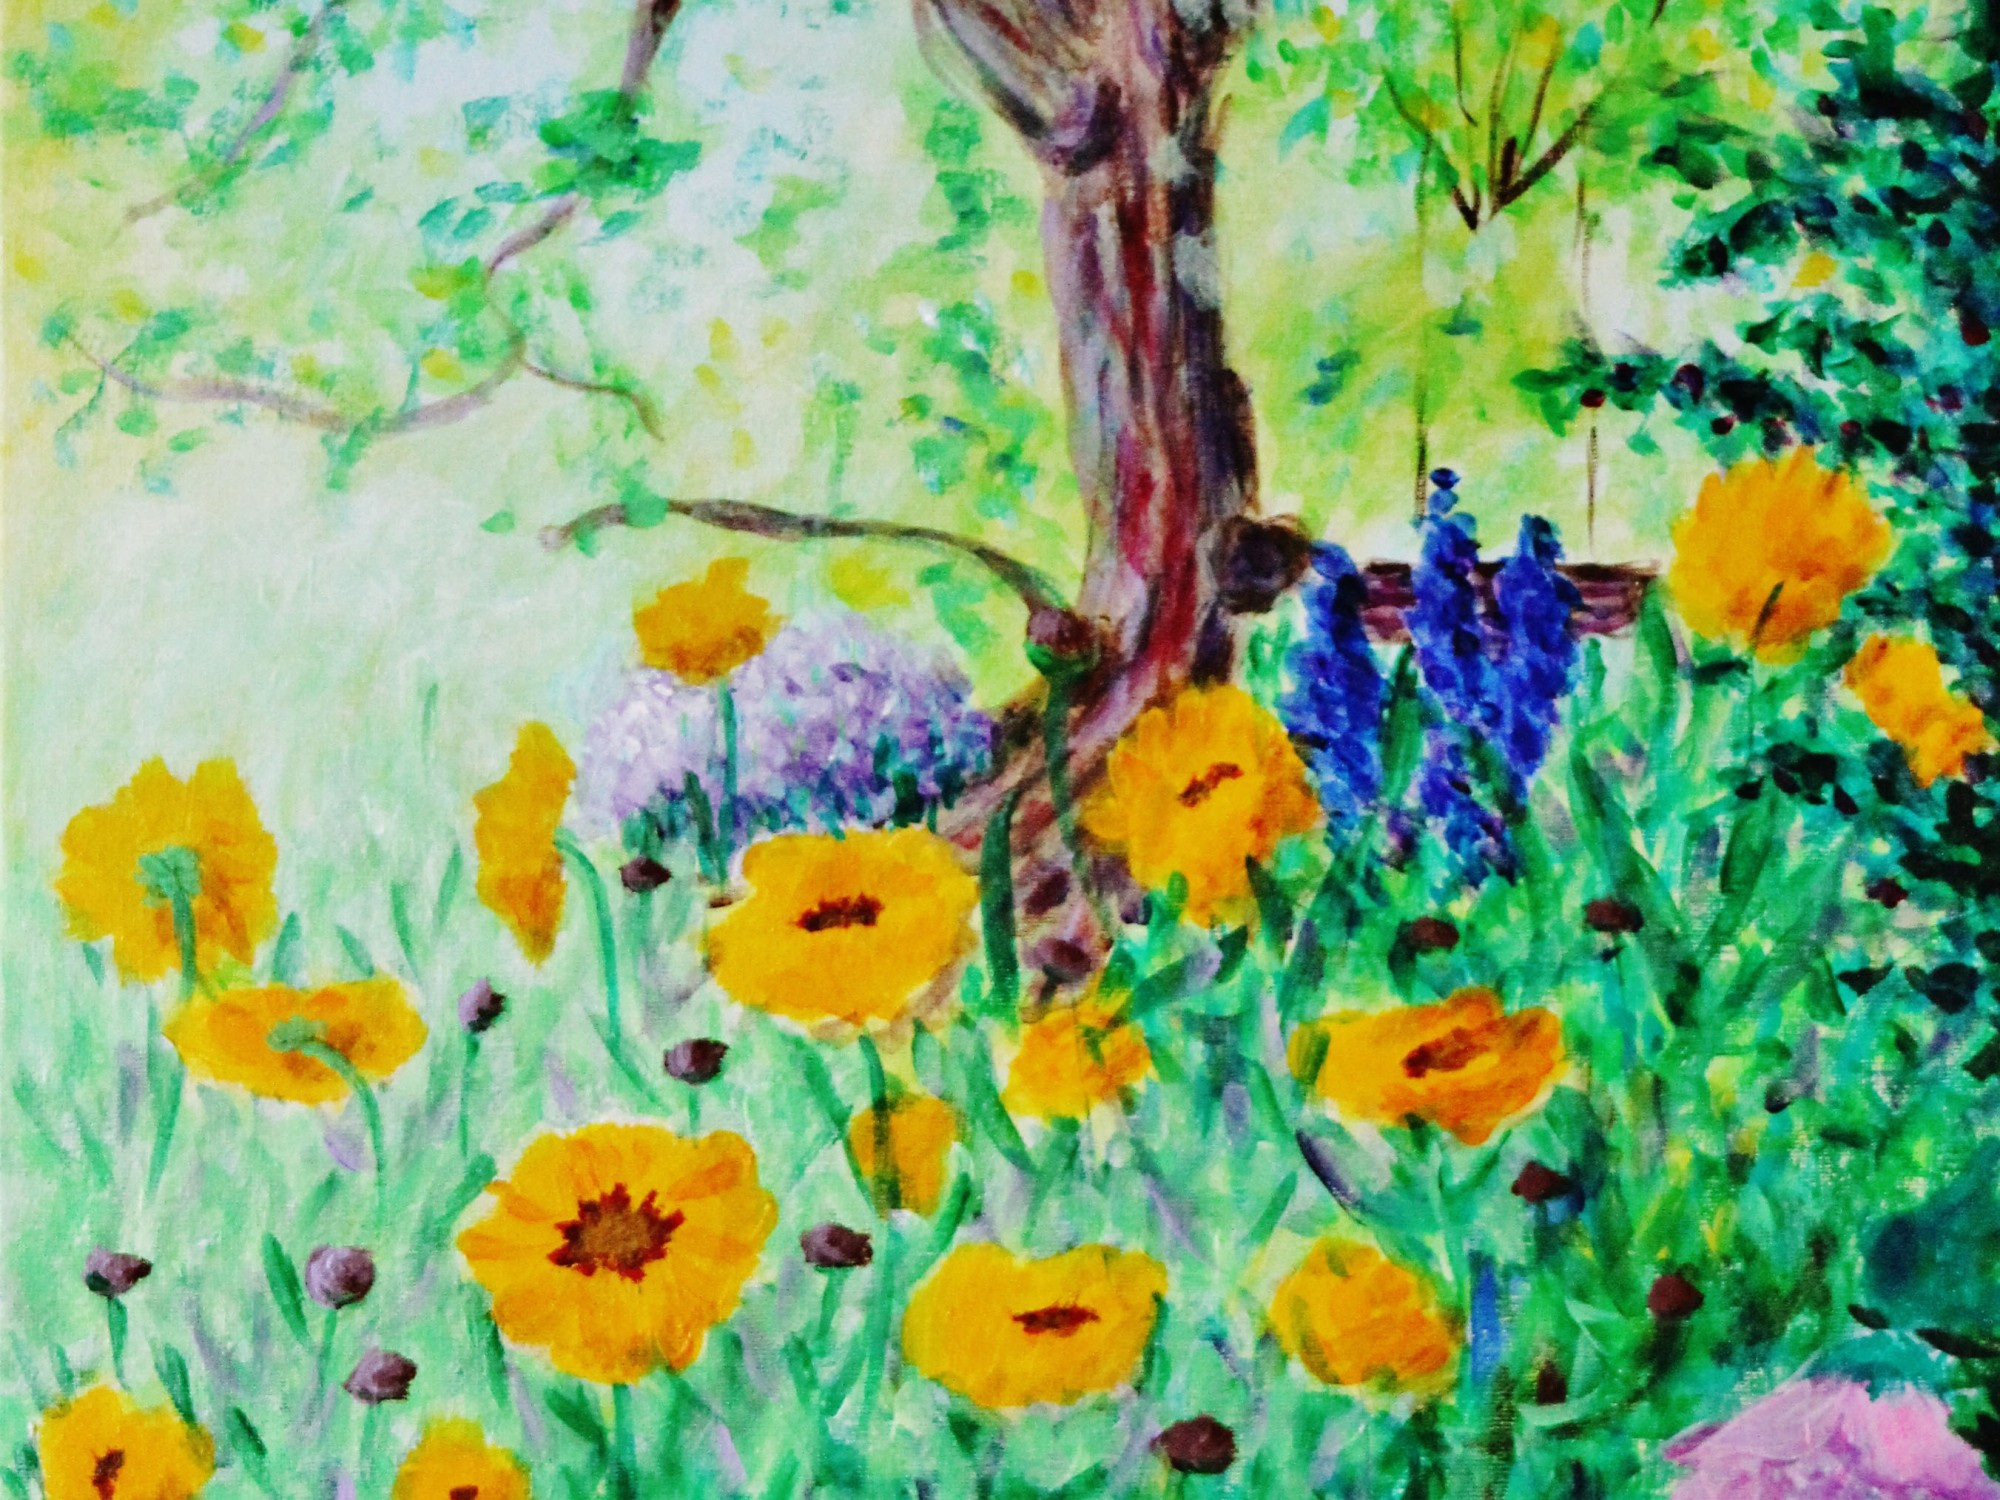 My Garden (coreopsis sunfire and other flowers), ArtHenning